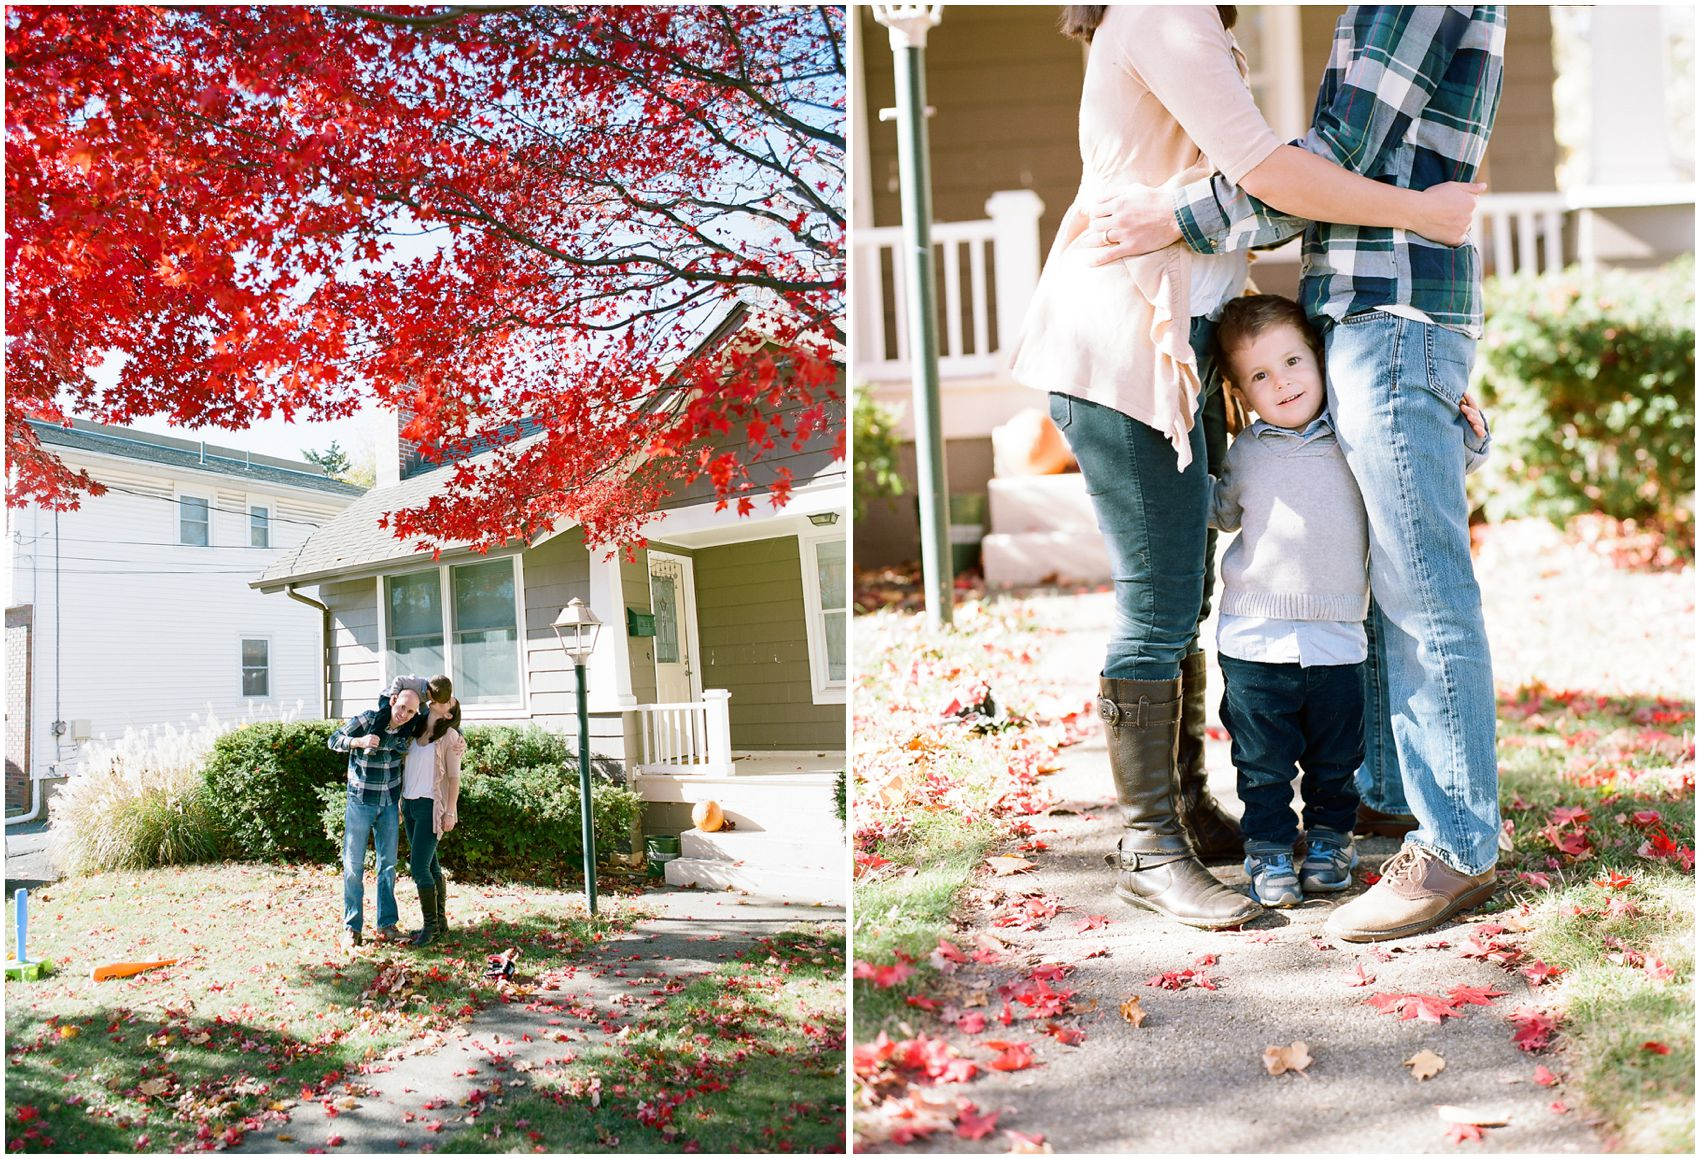 Mom and dad hugging little boy in Family photography fall season with beautiful foliage in front of the house in NYC